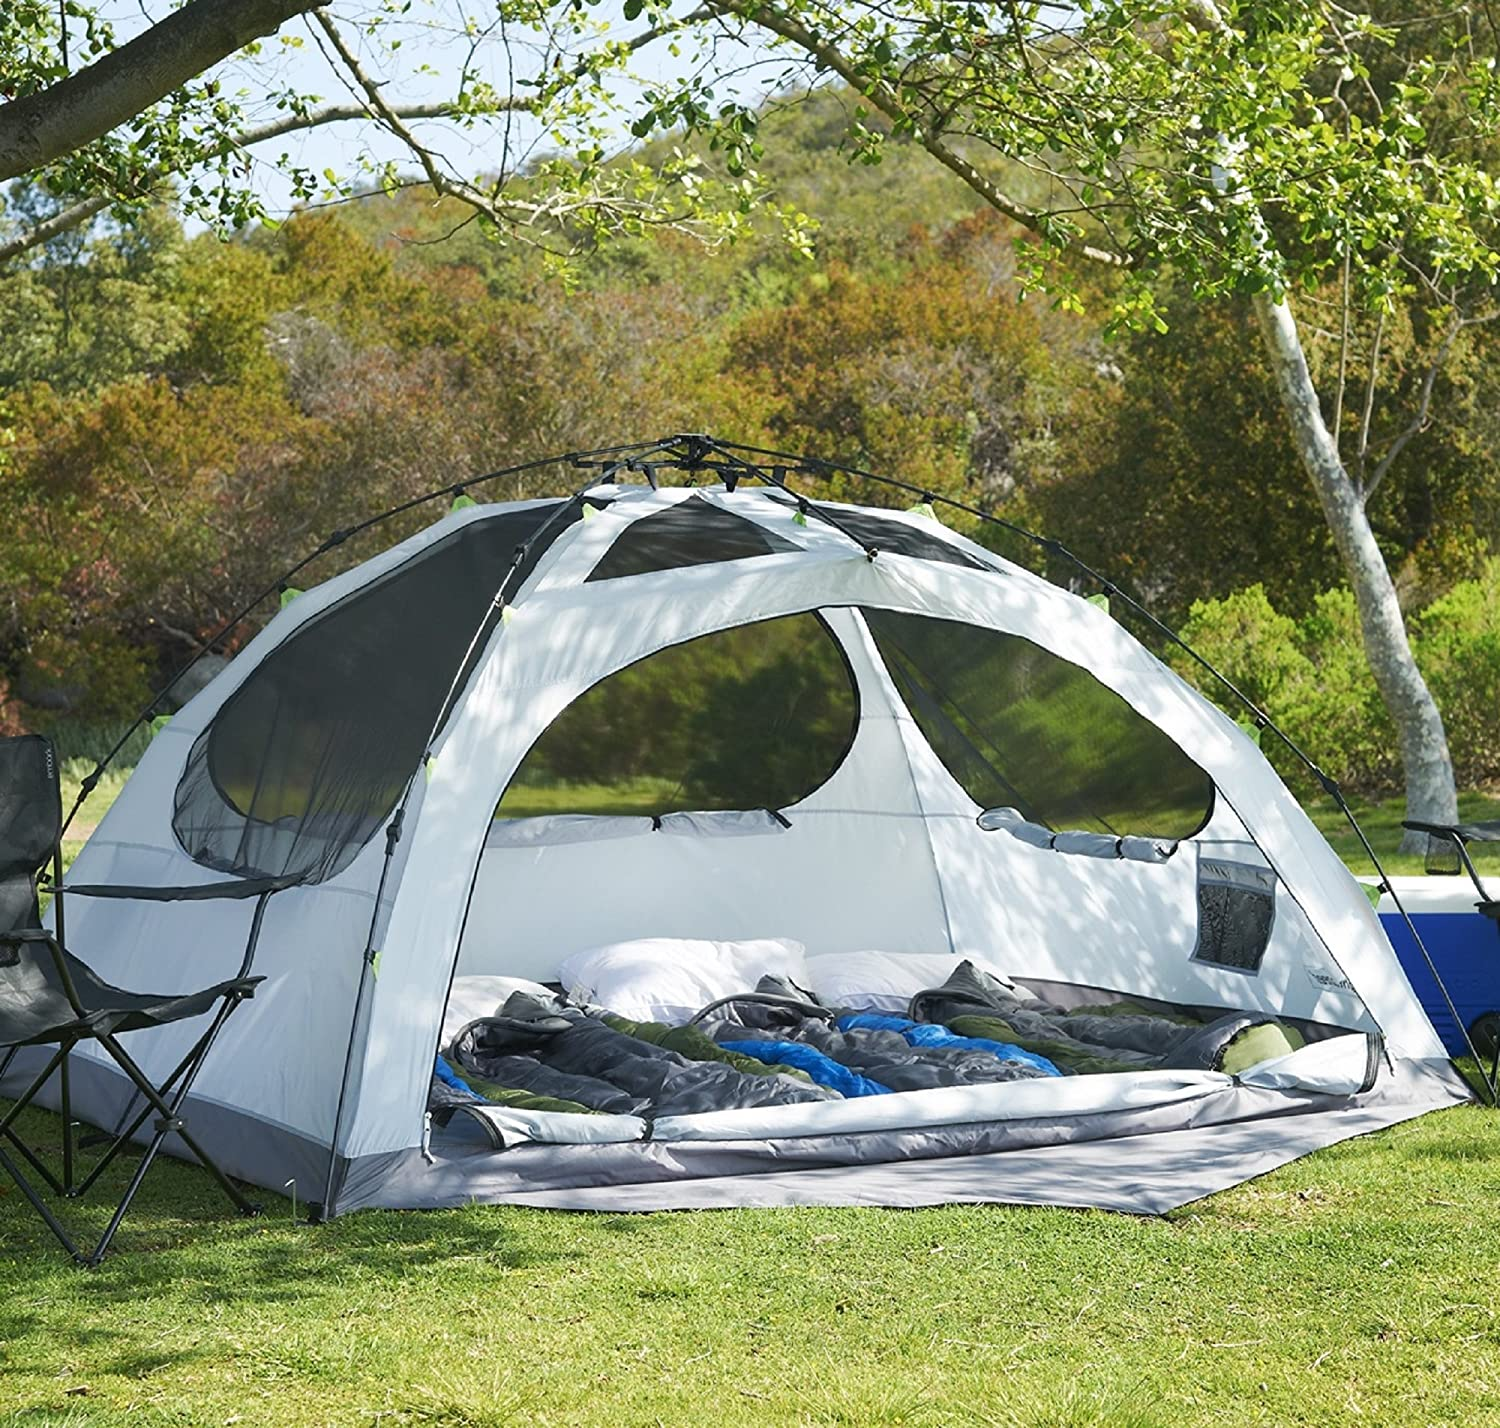 Amazon.com : Lightspeed Outdoors Vermont 4 Person Star Gazing Camping Tent  : Sports U0026 Outdoors